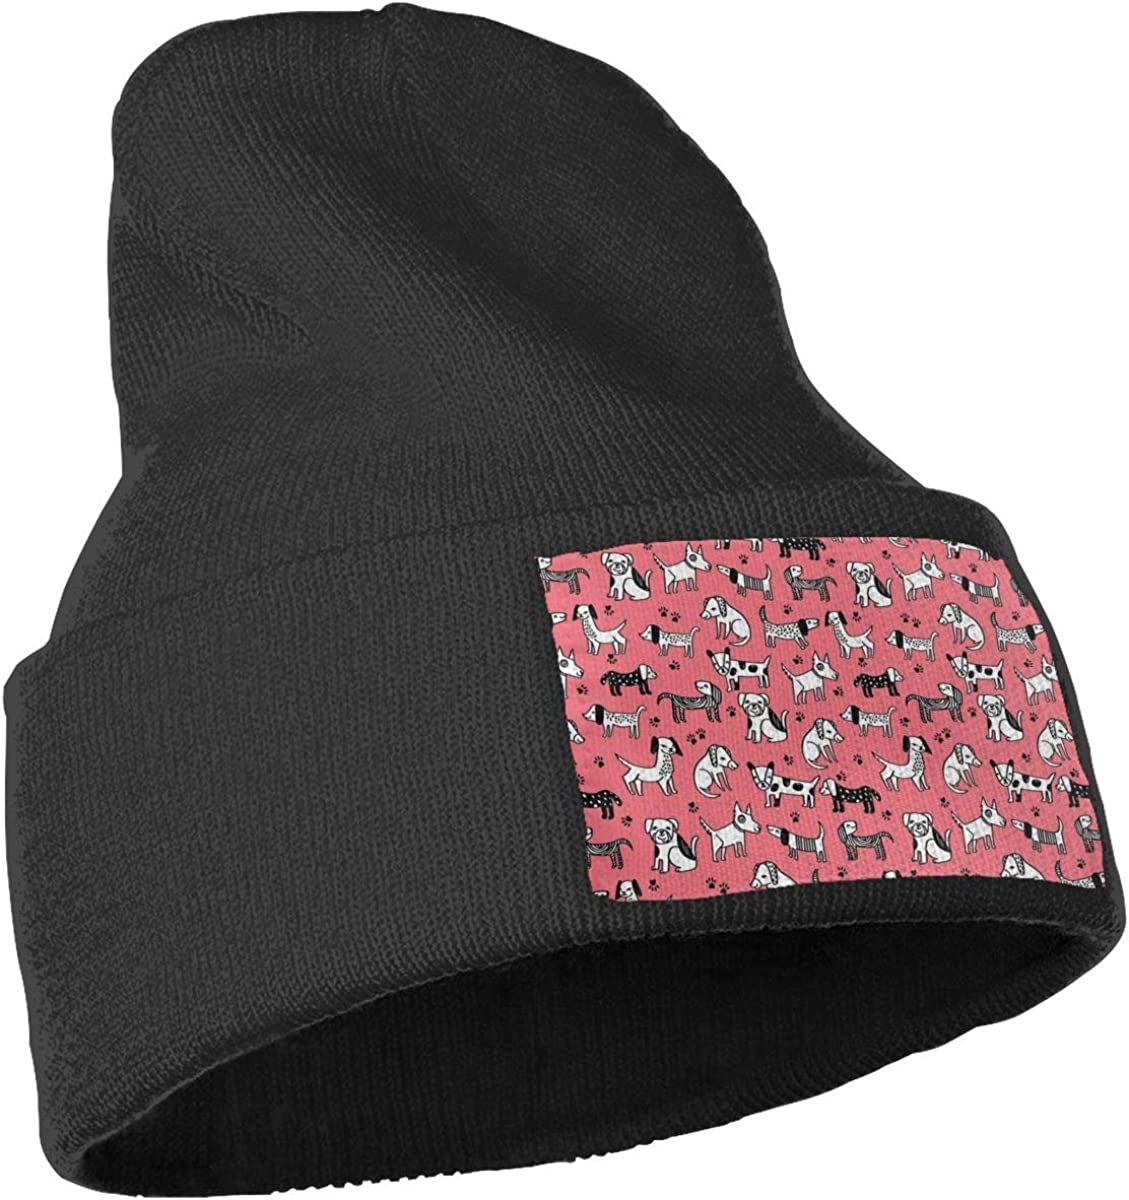 Xugui Pink Coral Bright Girly Pet Dog Puppy Beanie Hat Men /& Women Stretchy Cap Serious Style Slouchy Cap